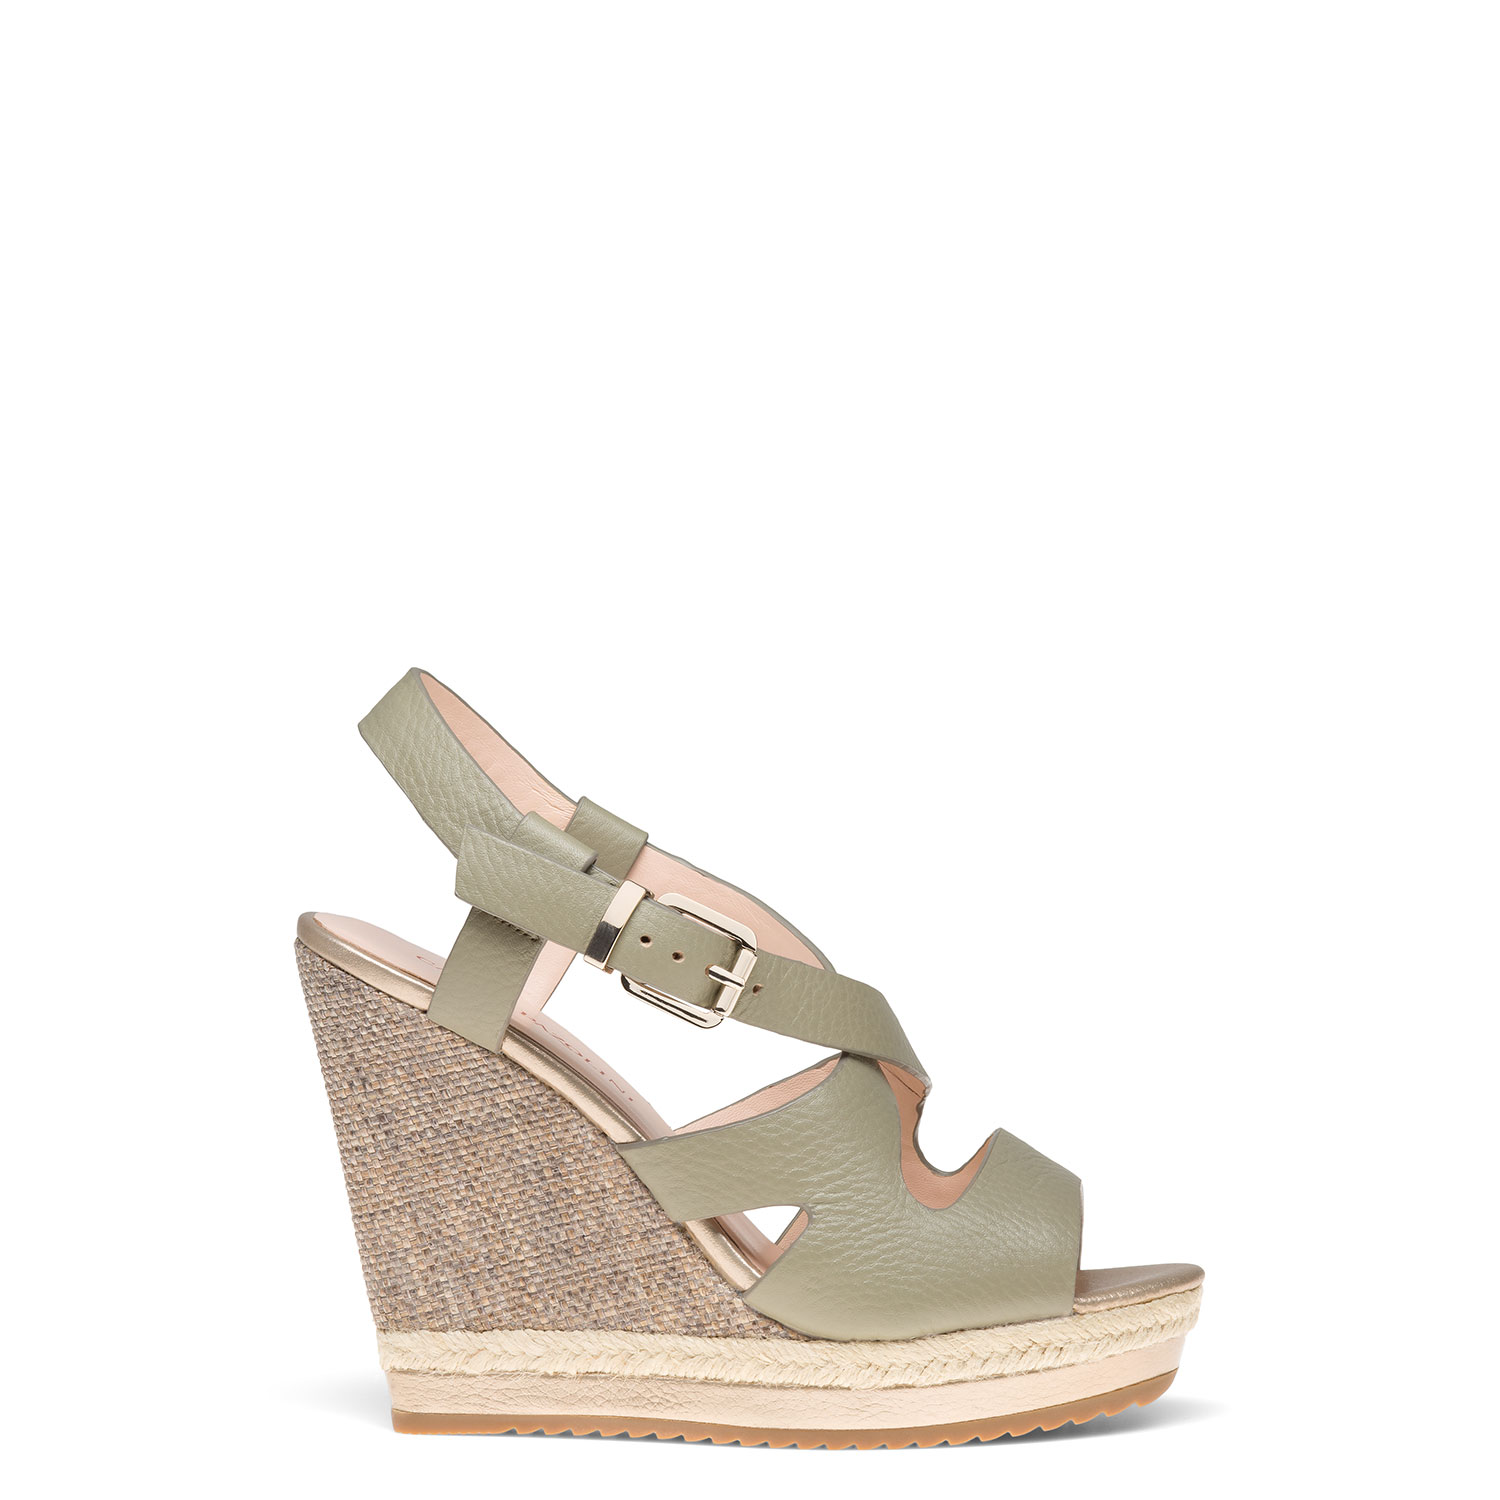 Women's sandals PAZOLINI YG-TAY2-26